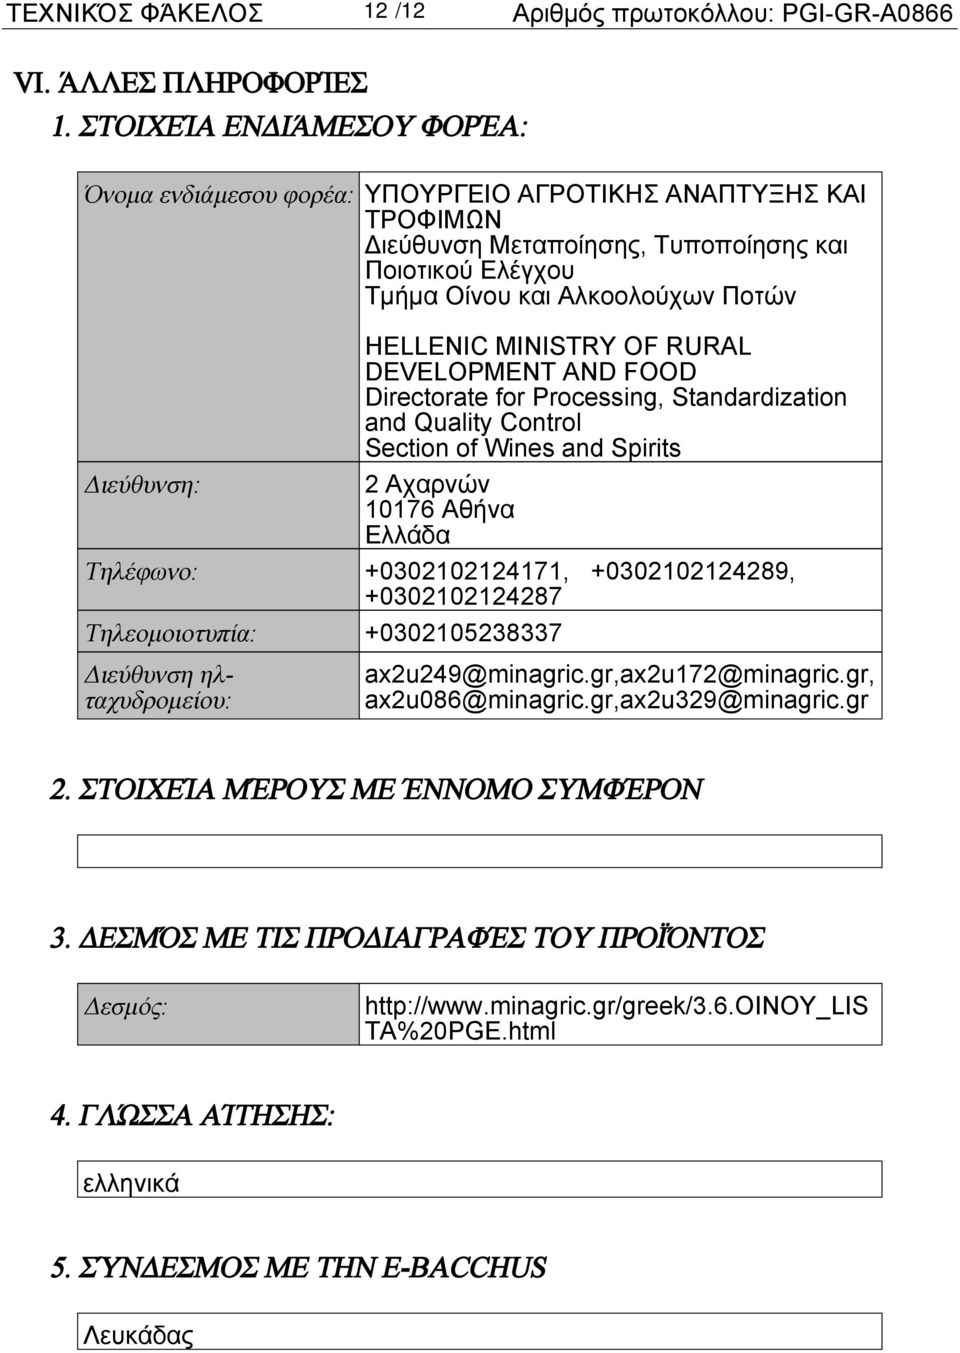 MINISTRY OF RURAL DEVELOPMENT AND FOOD Directorate for Processing, Standardization and Quality Control Section of Wines and Spirits 2 Αχαρνών 10176 Αθήνα Τηλέφωνο: +0302102124171, +0302102124289,